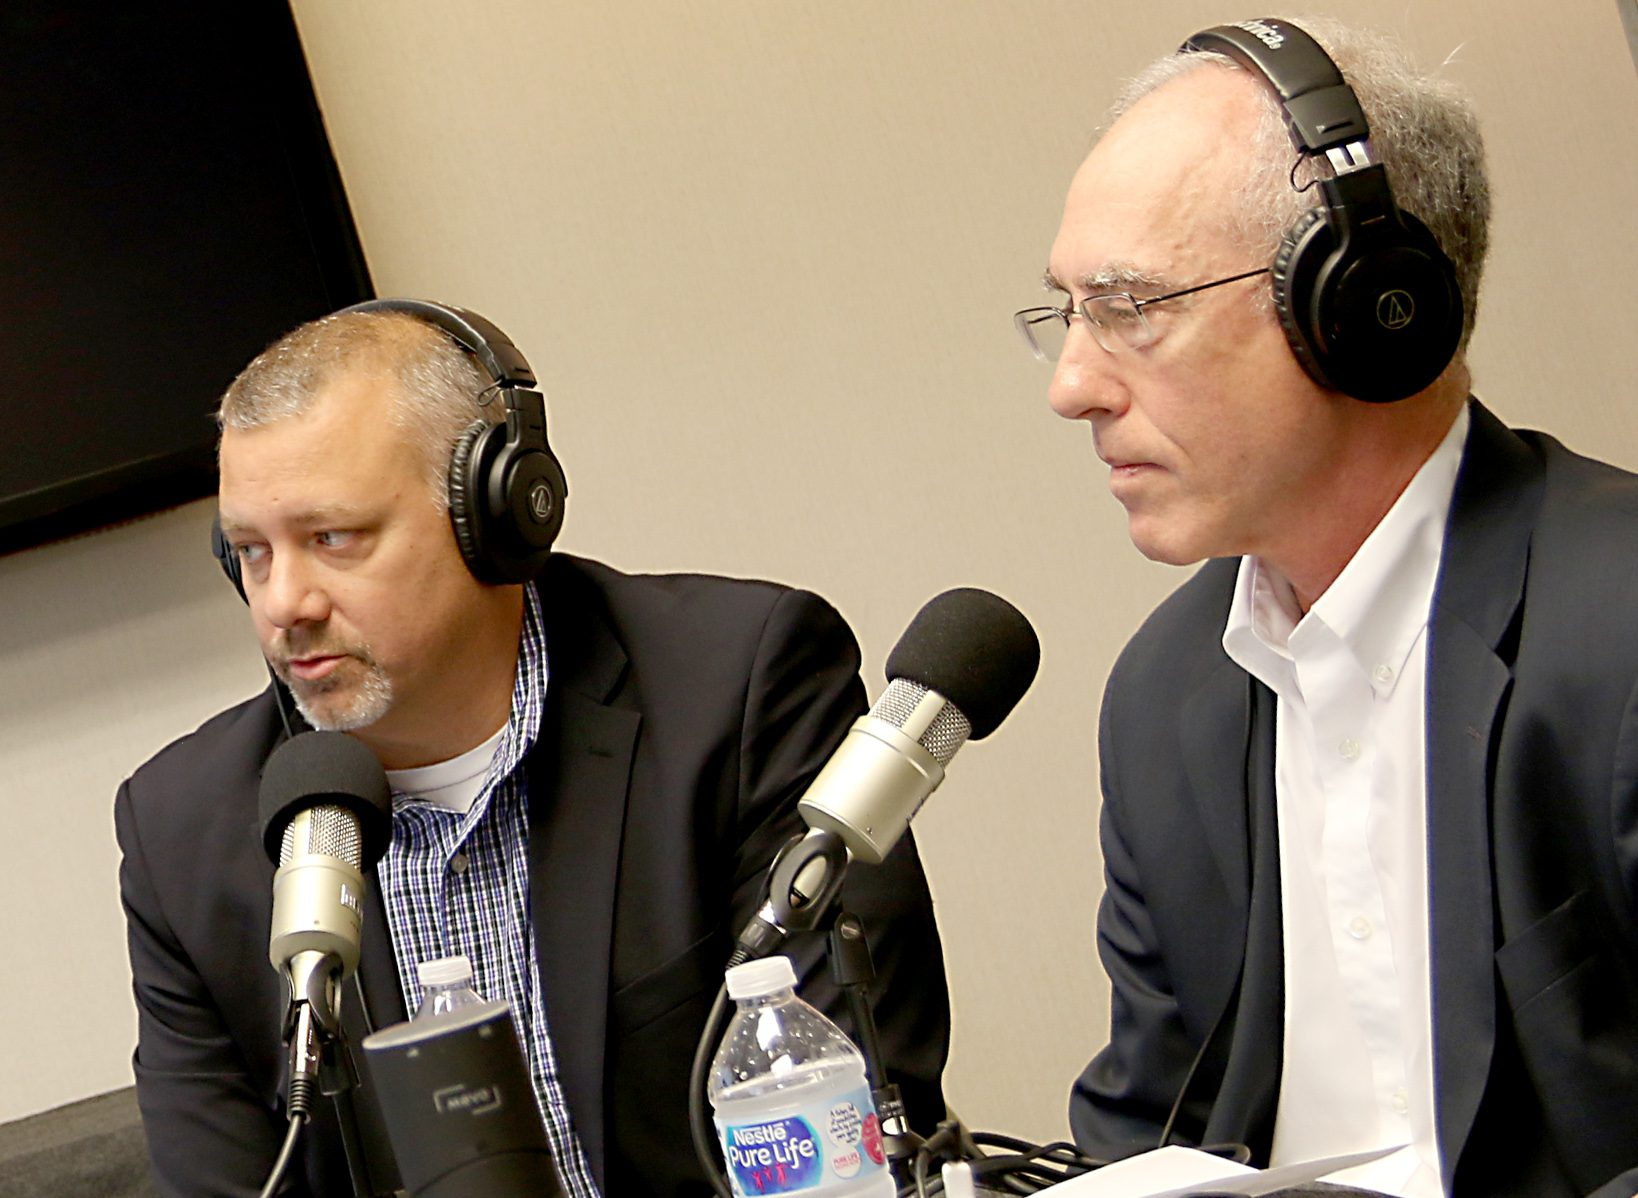 Paul Gregory & Andy Gelfand   Podcast Interview   Ohio Business Podcast